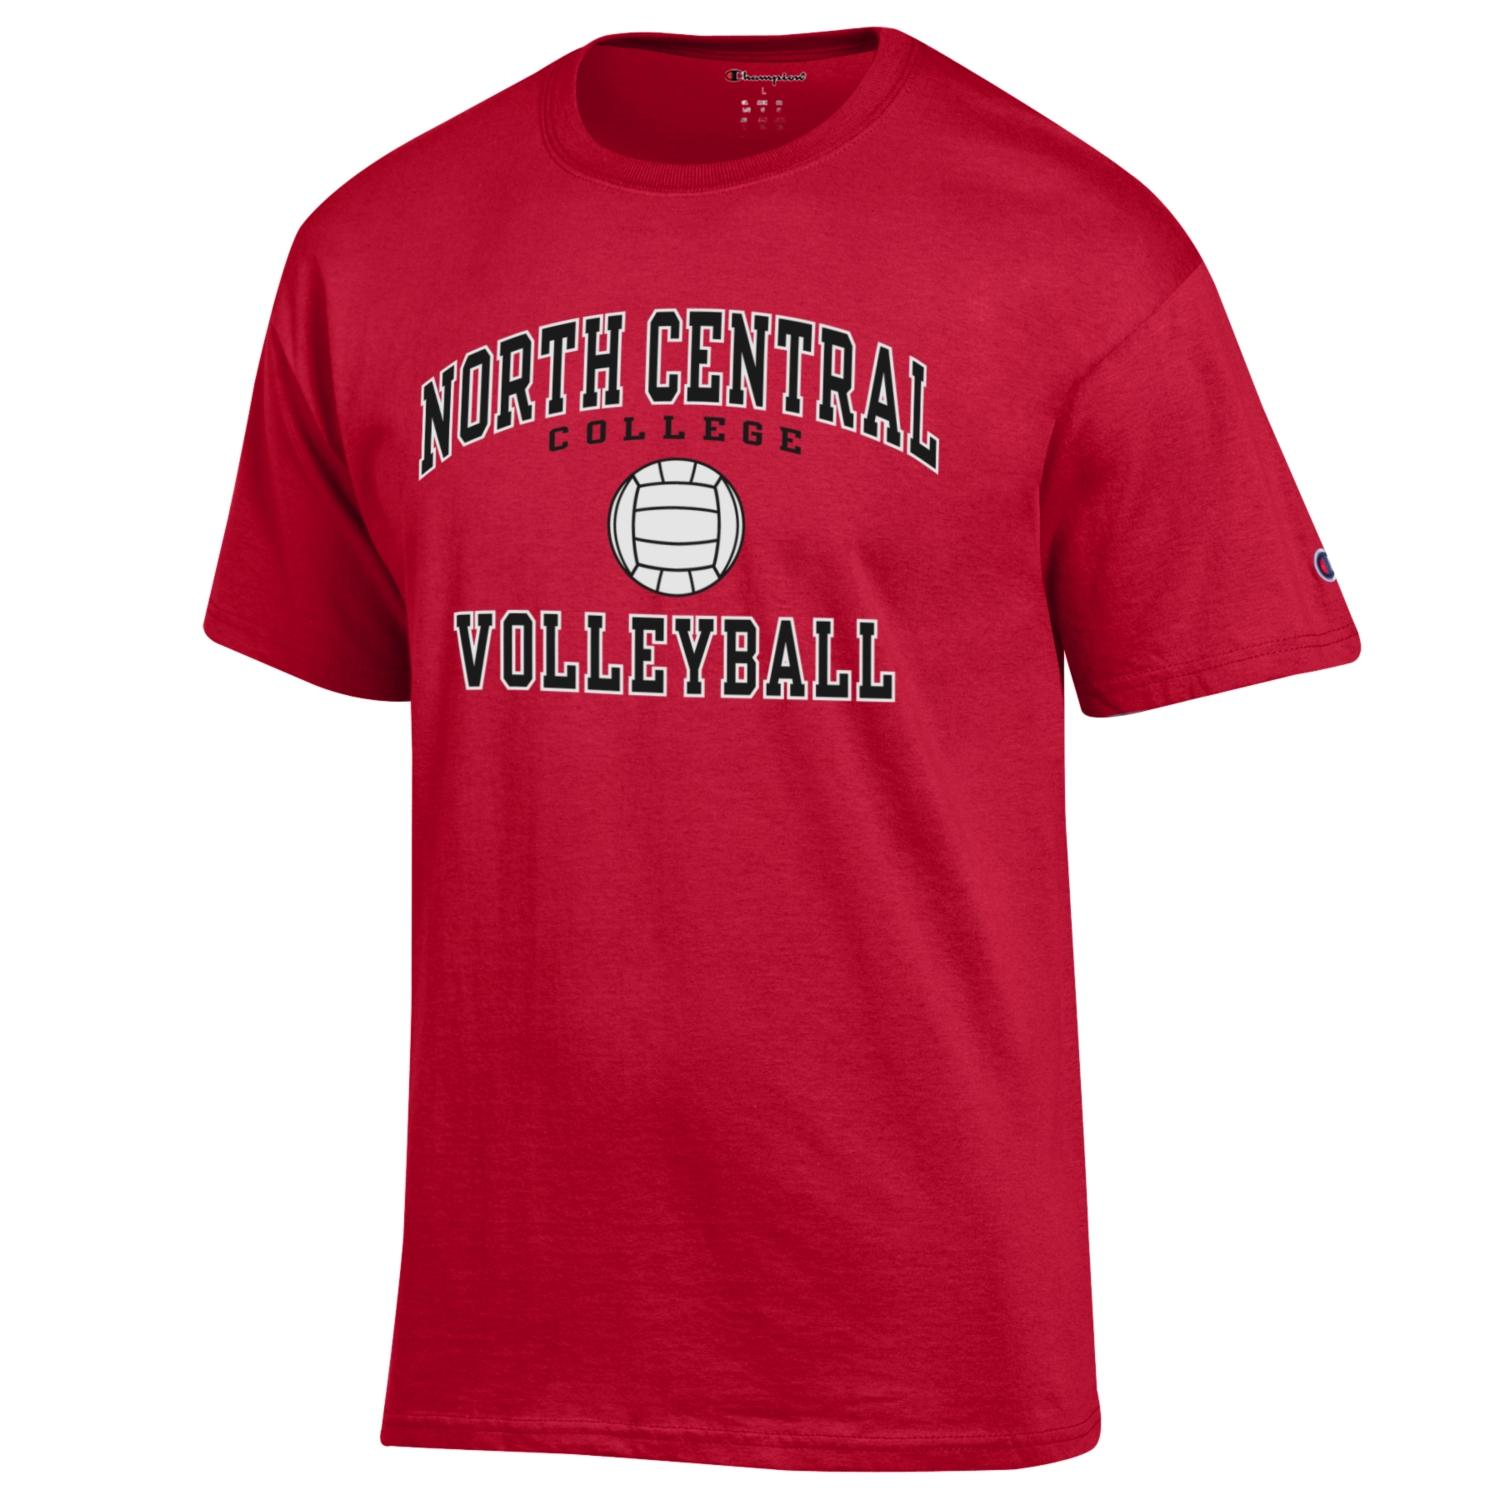 Image for the Volleyball Basic Short Sleeve Tee(Champion) product